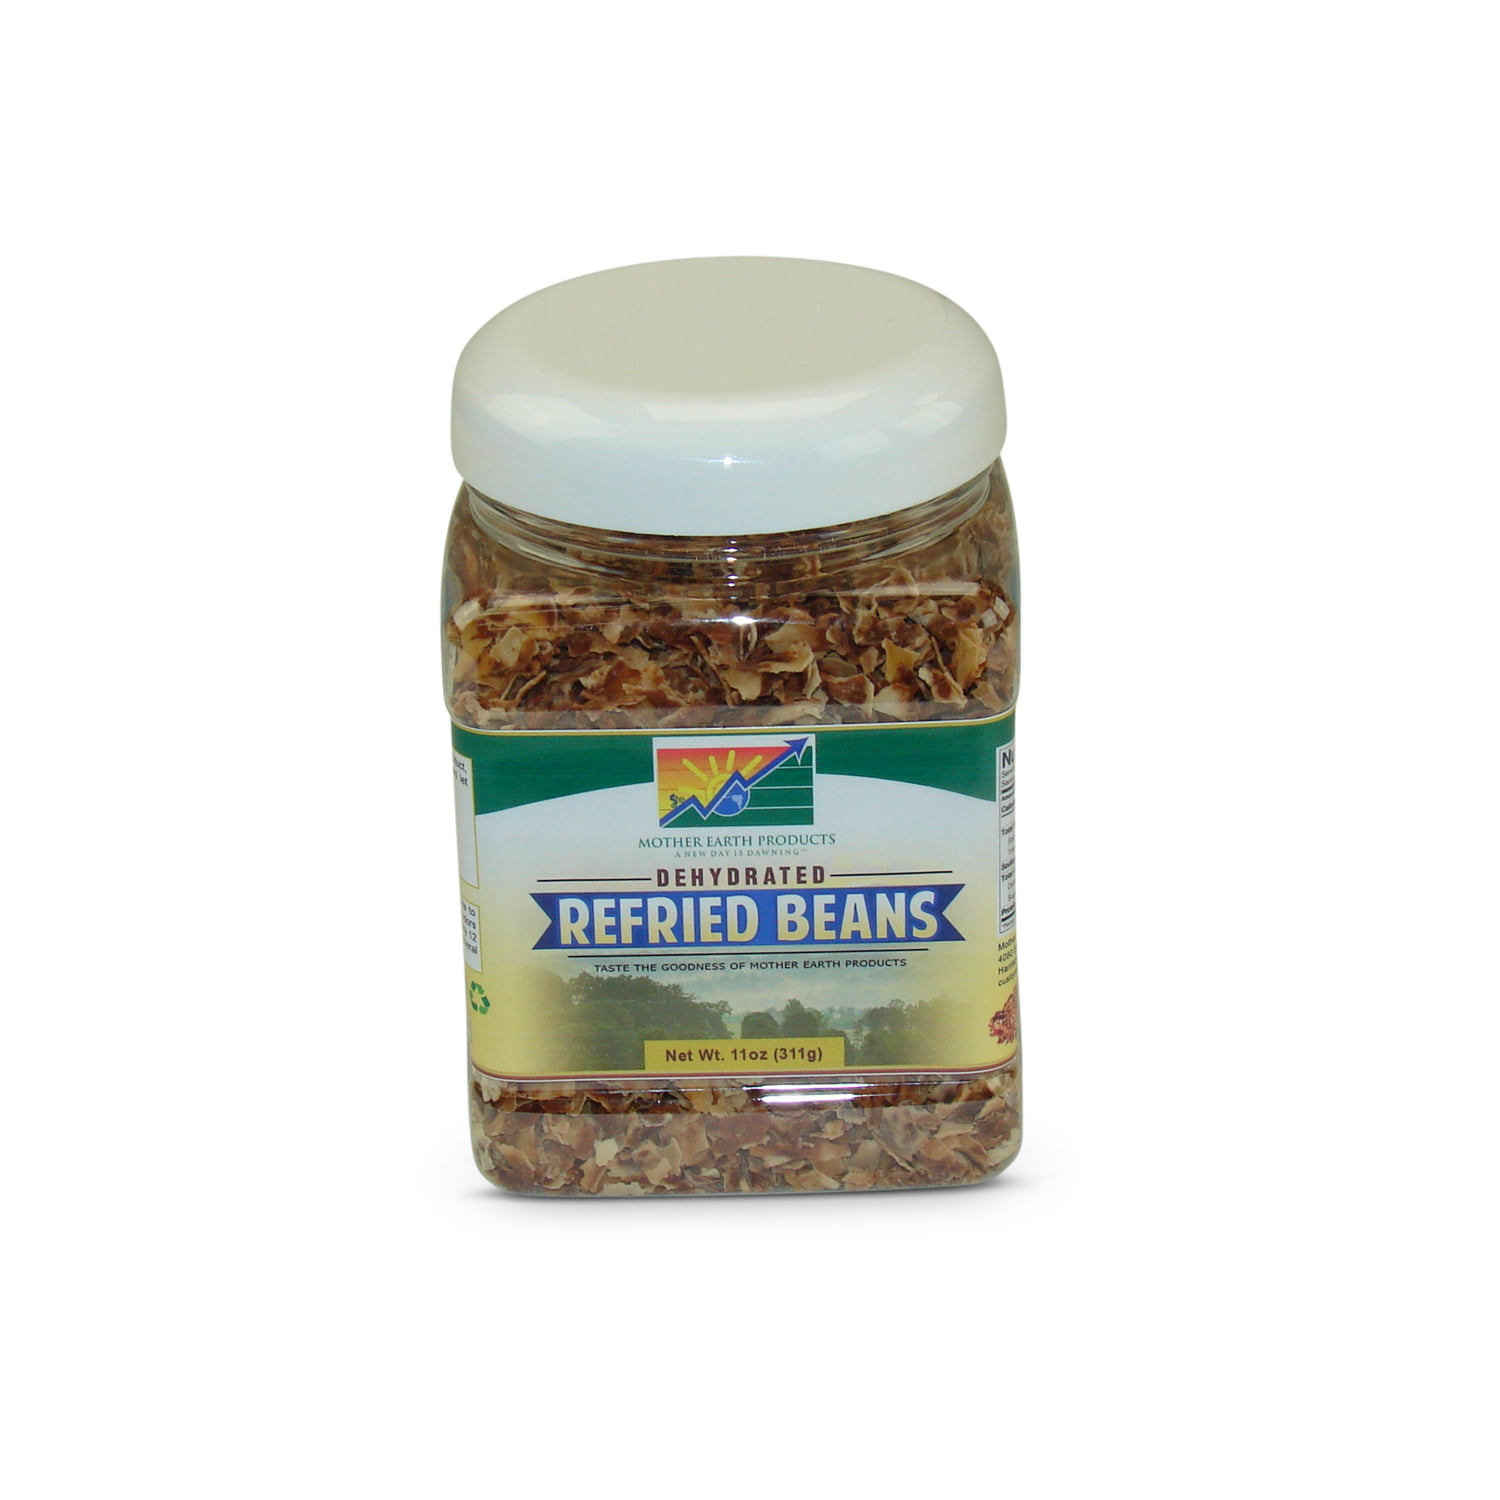 Mother Earth Products Dehydrated Refried Beans Mix, jar by Mother Earth Products